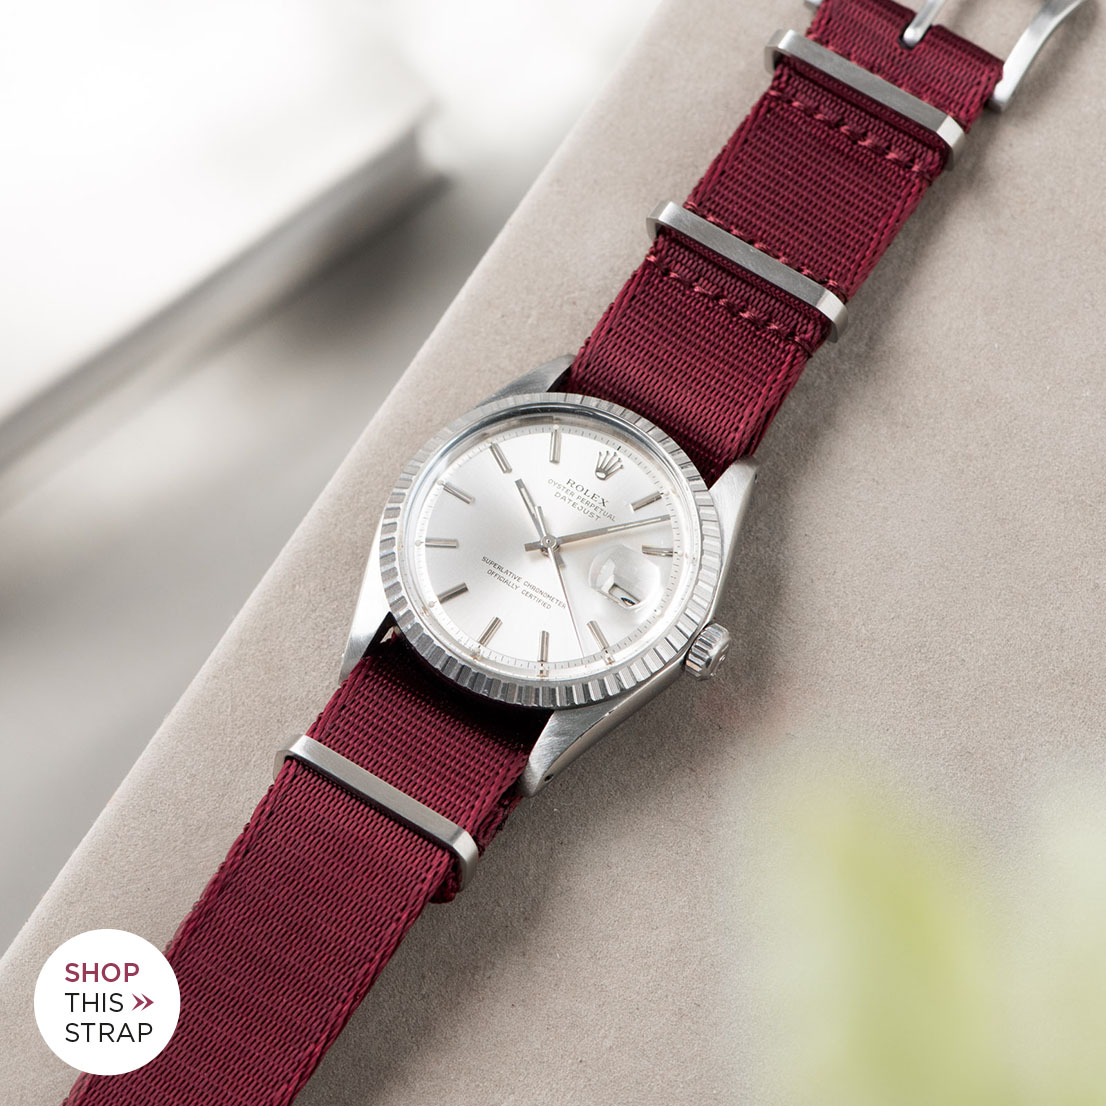 Bulang and sons_Strap Guide_Rolex Datejust Silverdial 1601 1603 1600 1630_DELUXE NYLON NATO WATCH STRAP BURGUNDY RED